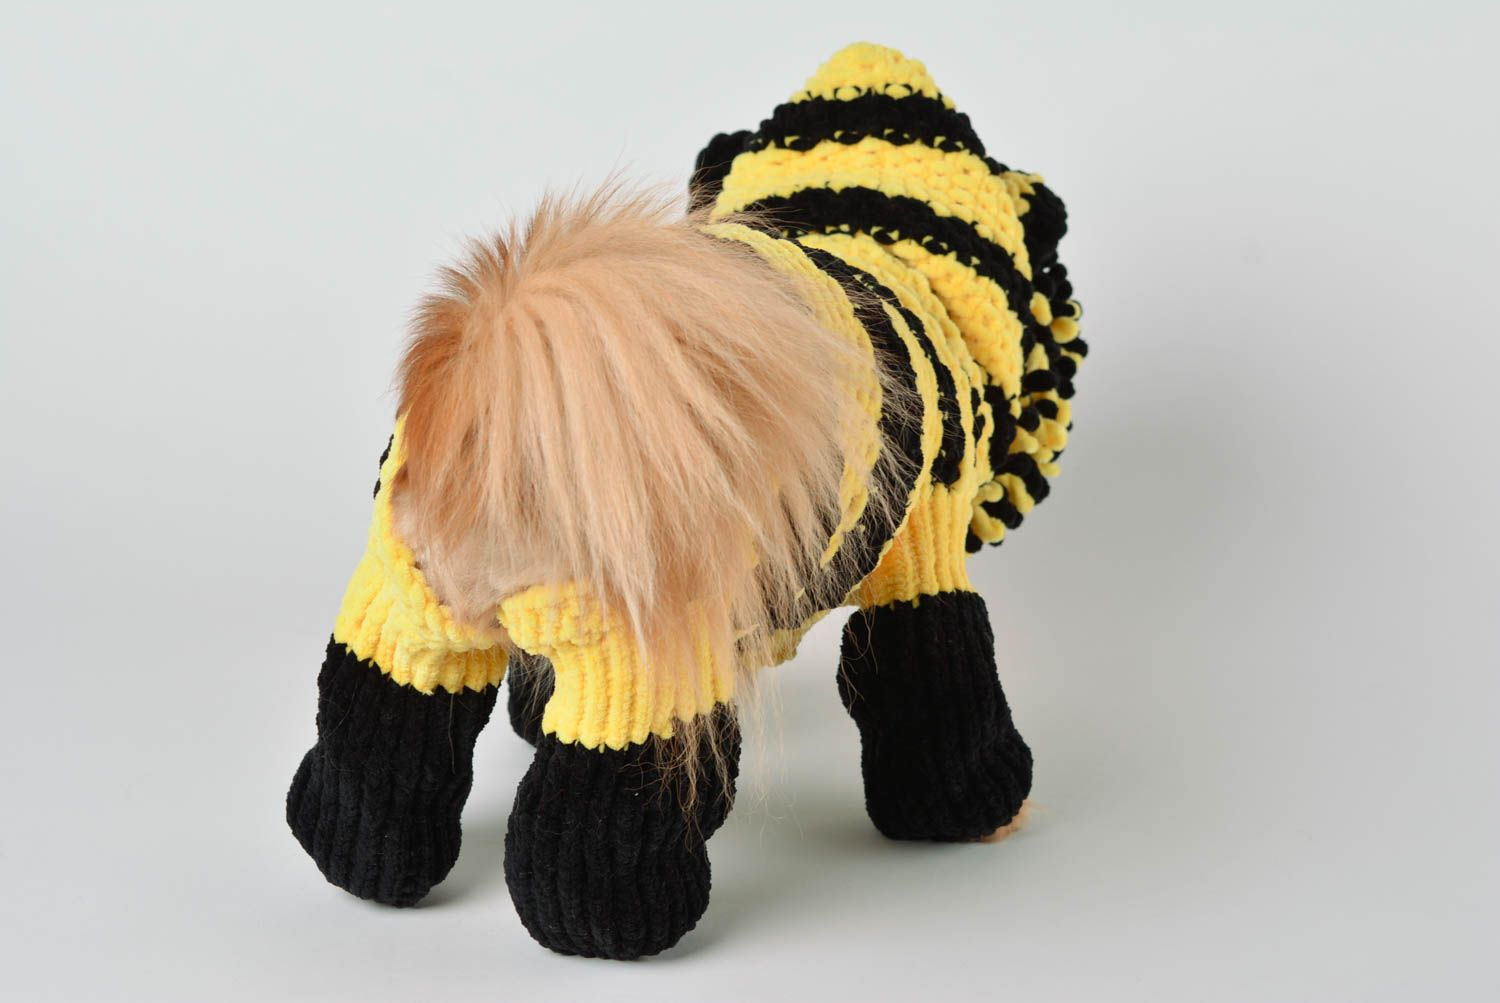 Handmade knitted suit for dogs bright designer clothes for pets cute accessory photo 4